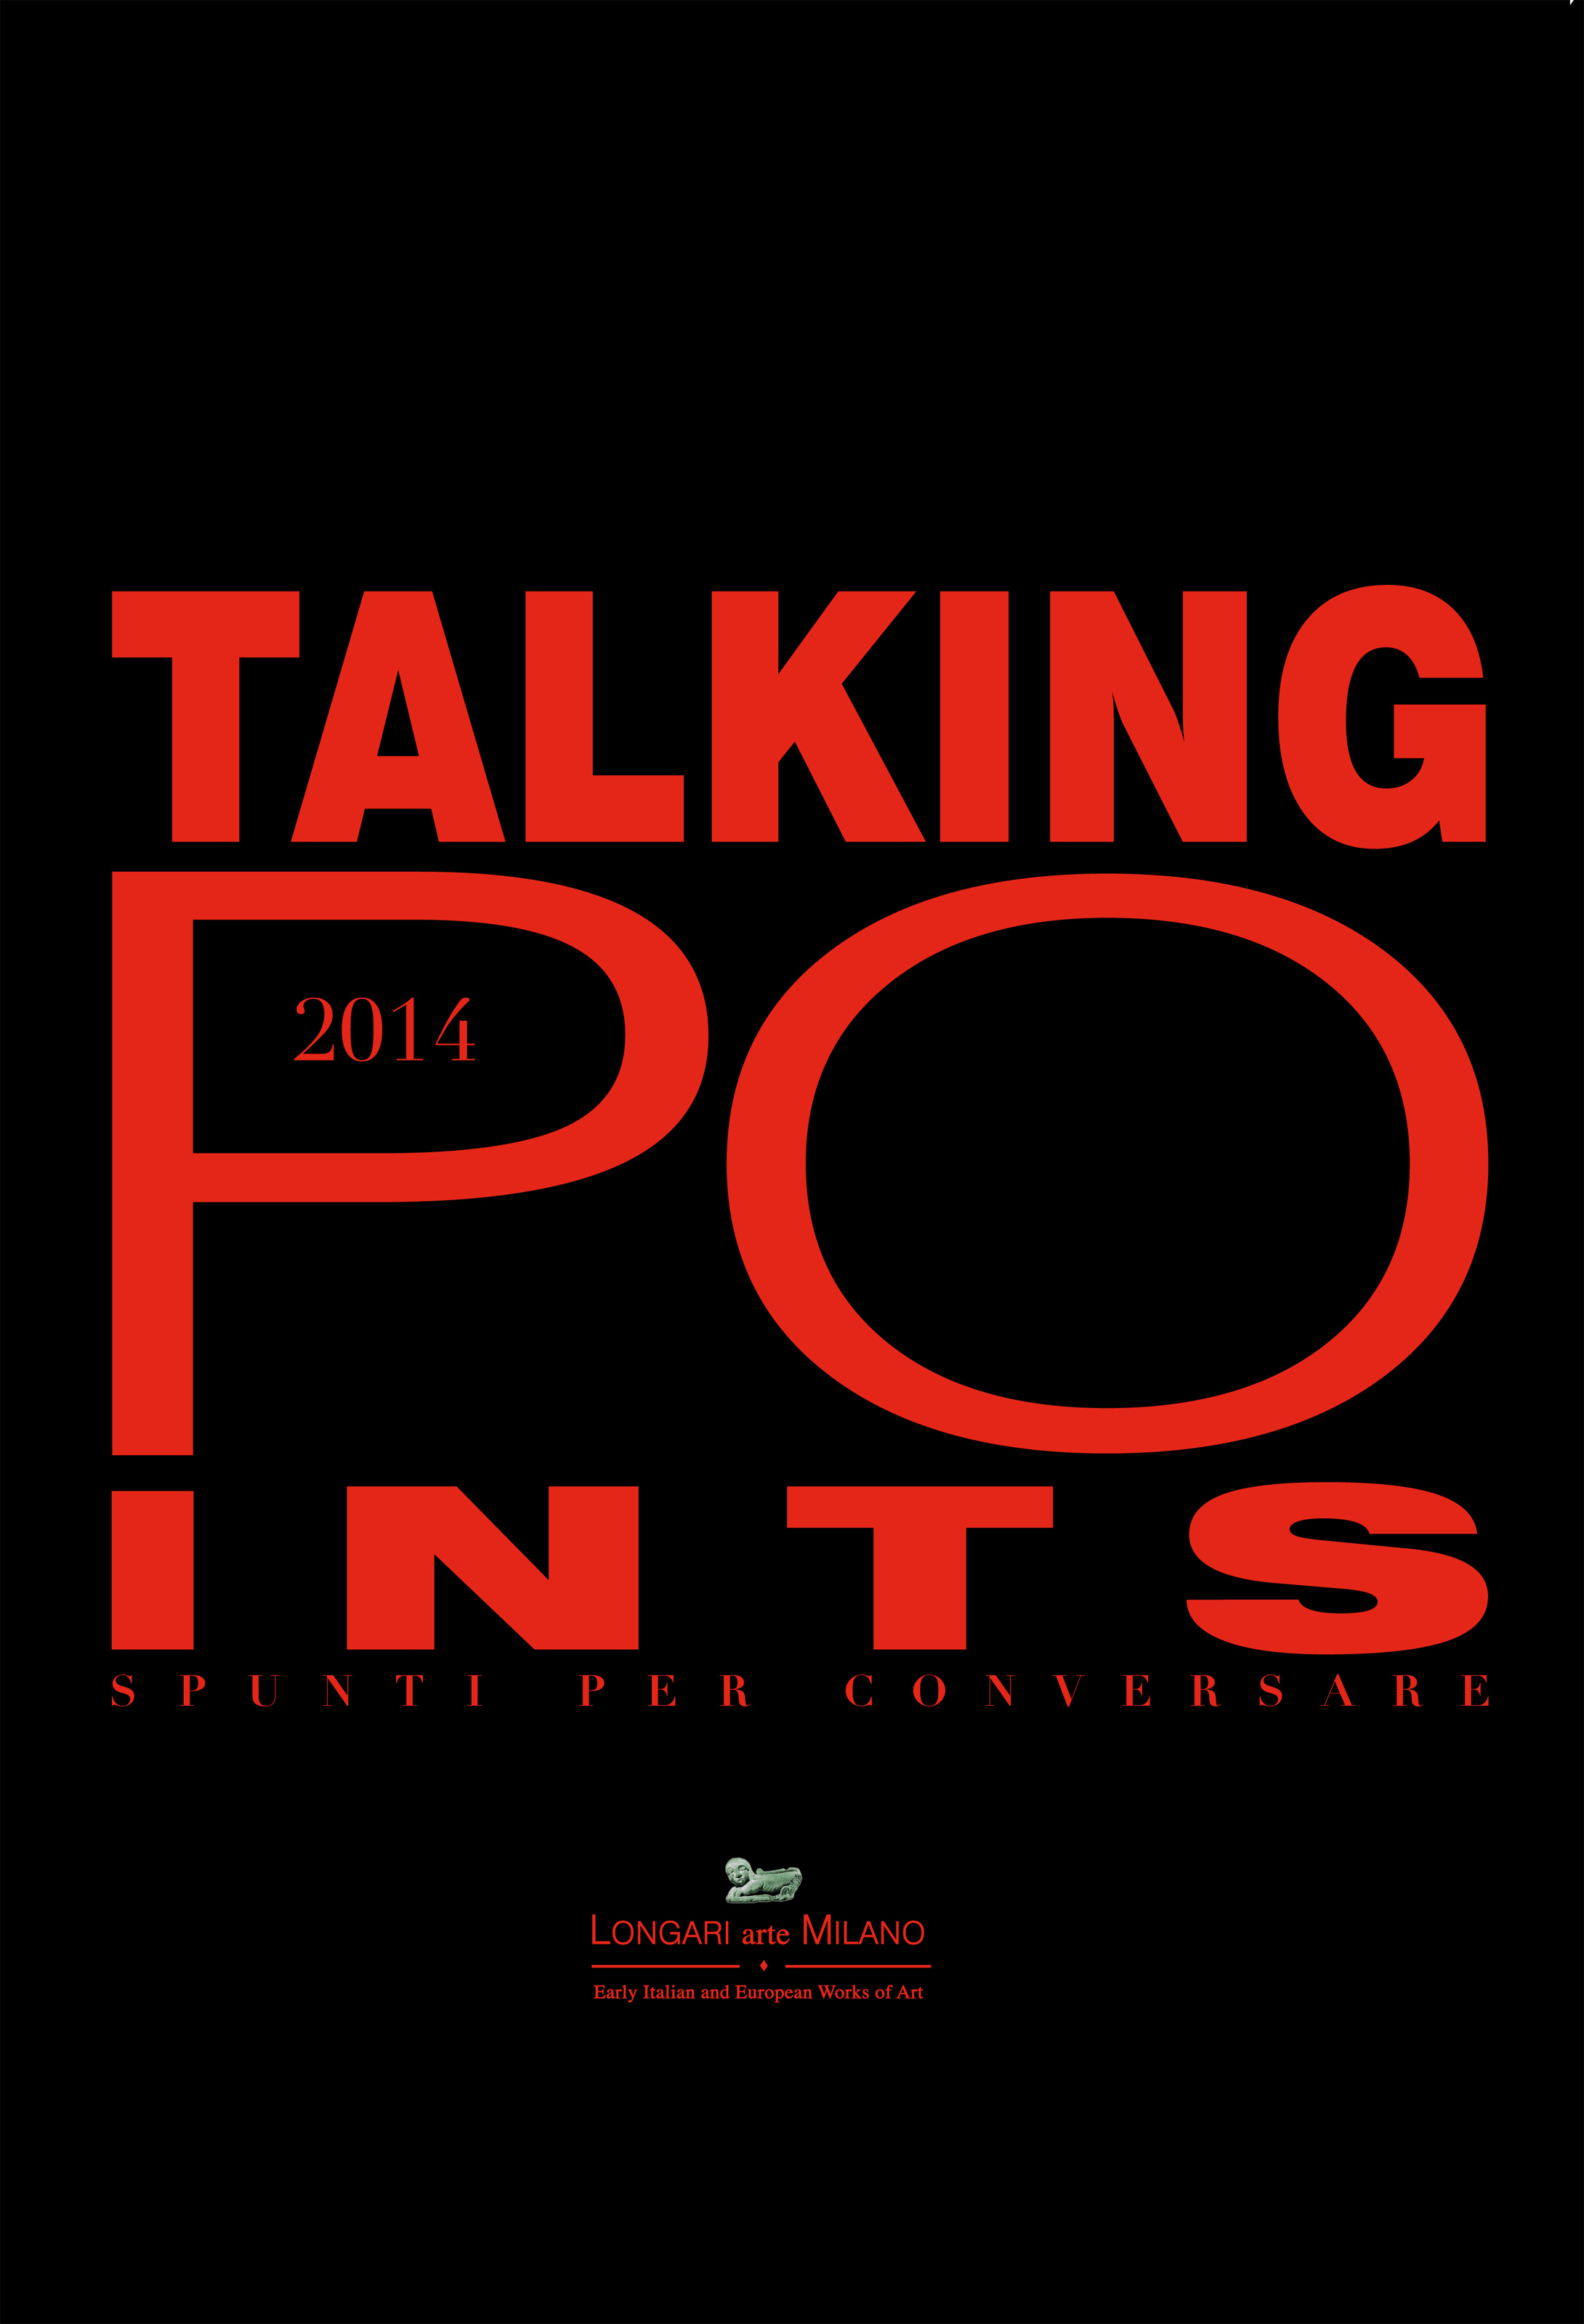 Talking Points – Spunti per Conversare 2014